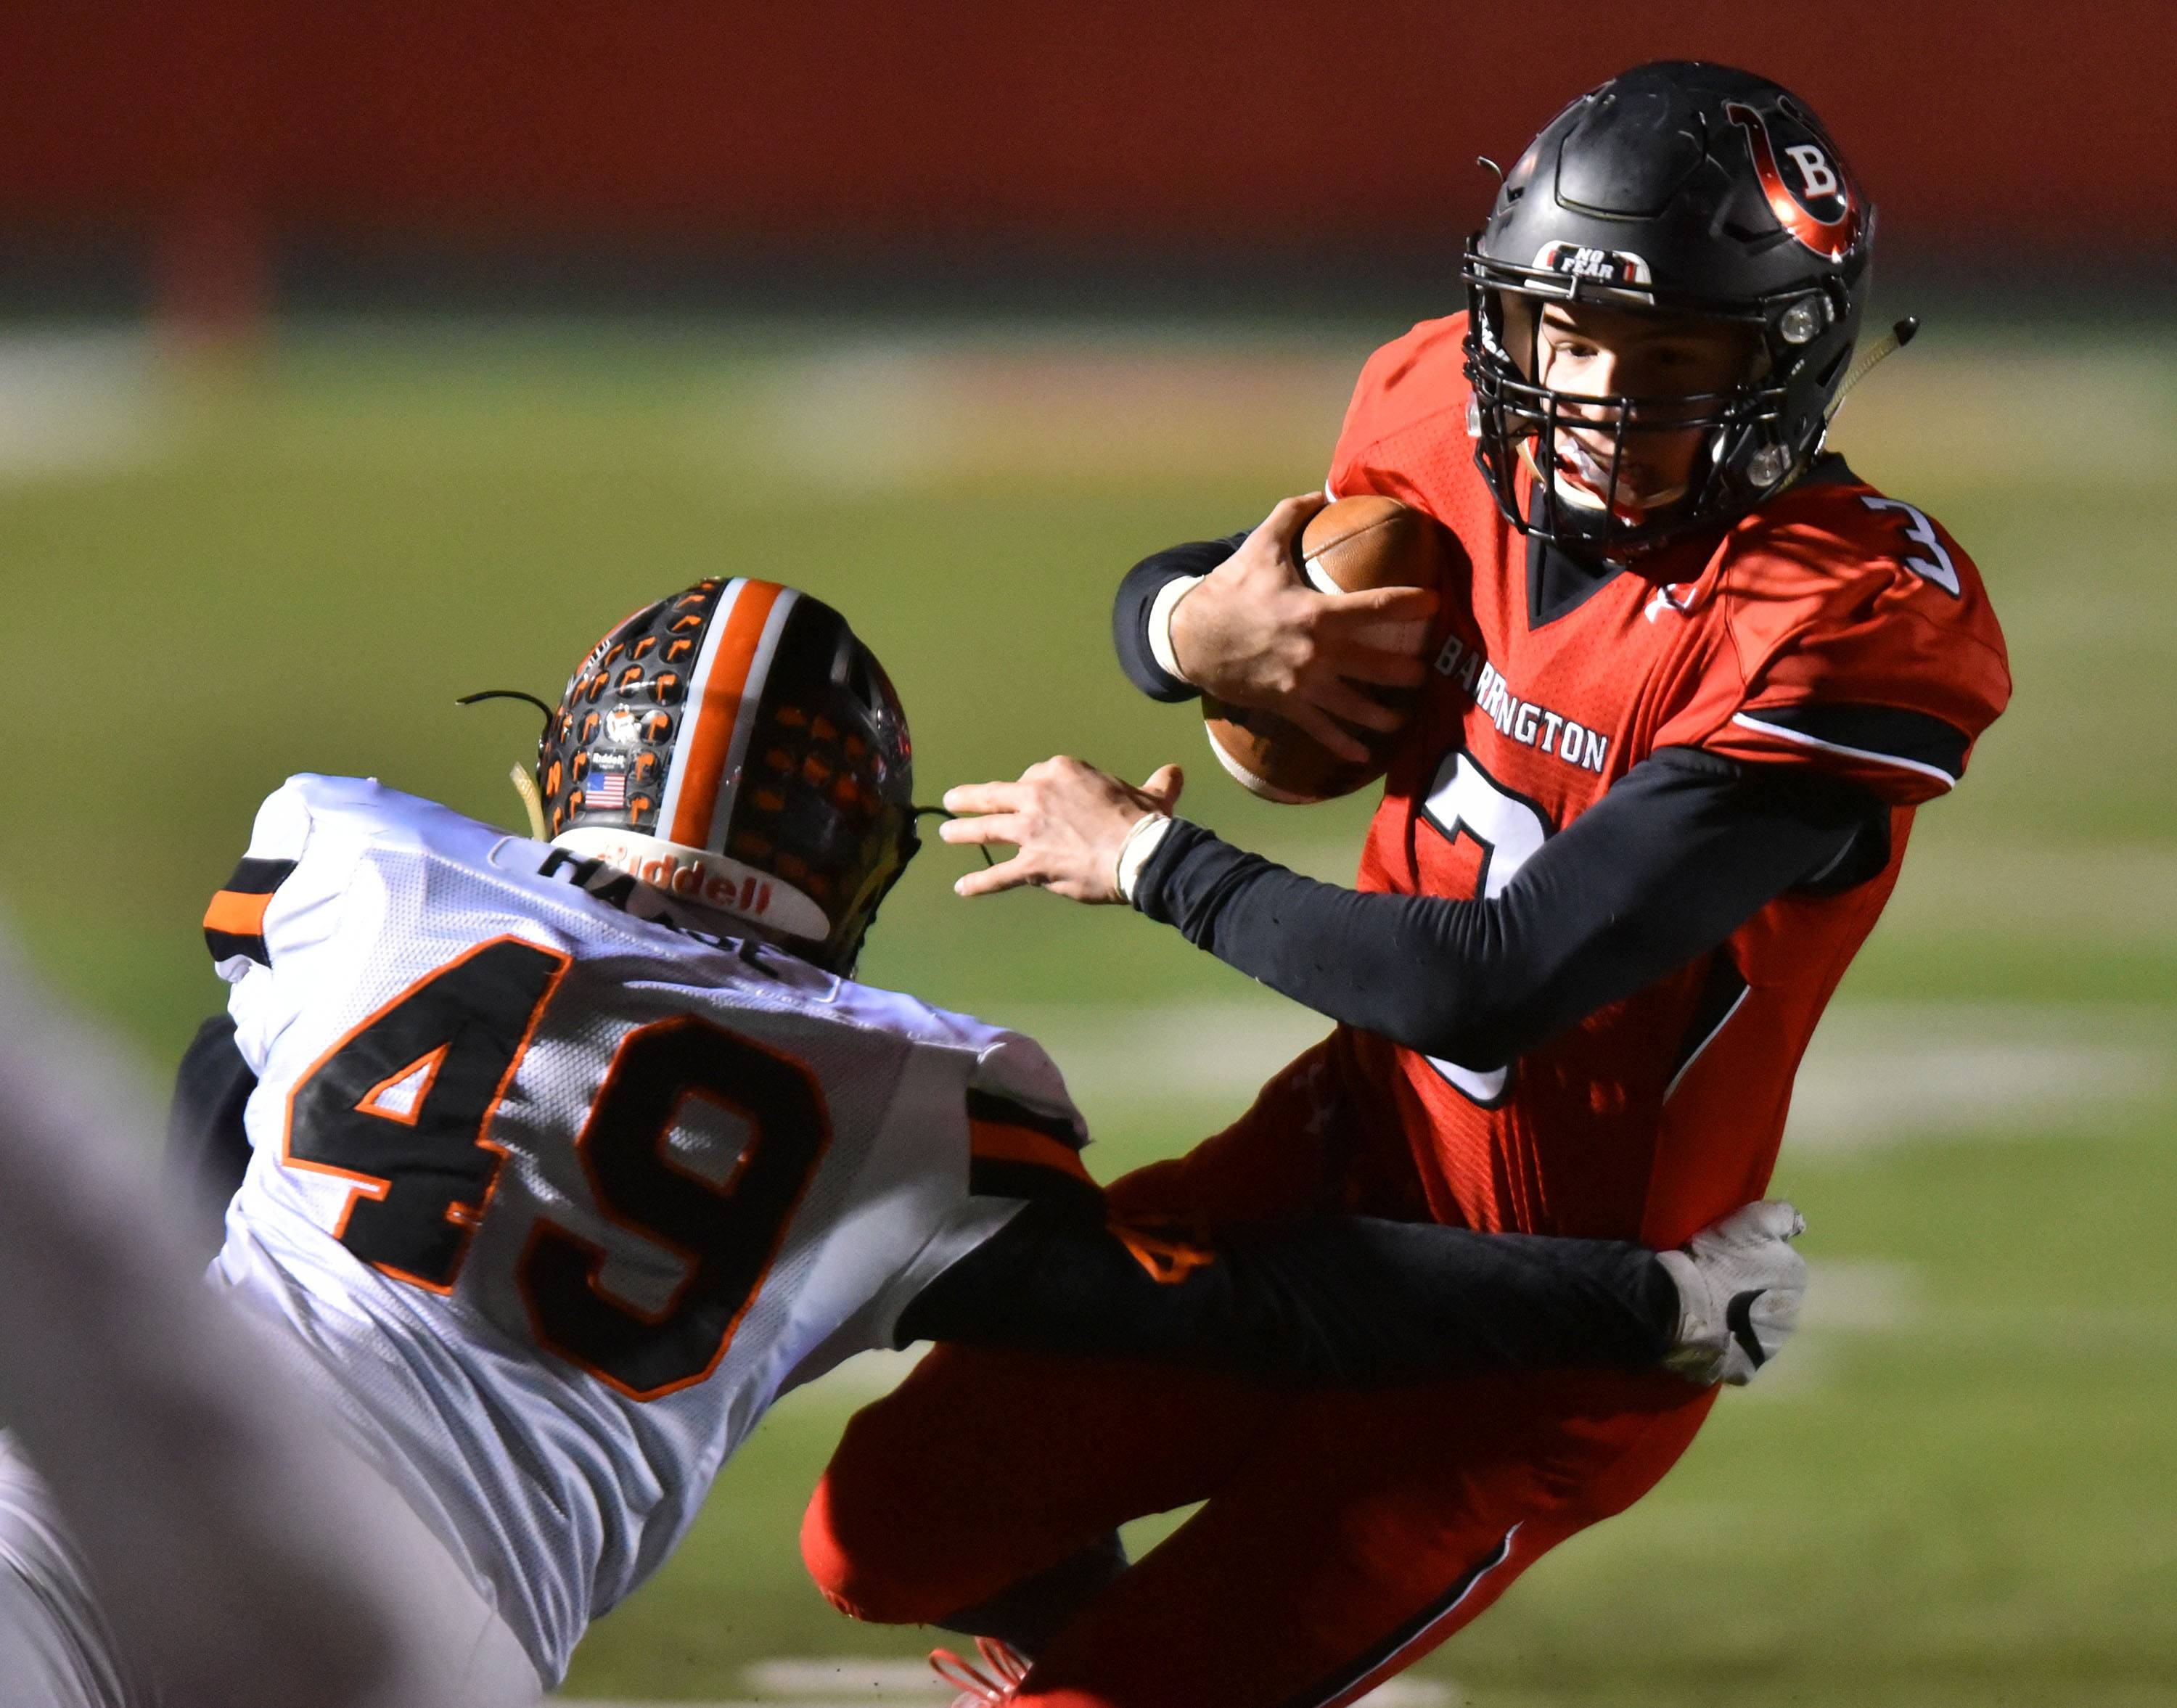 Barrington's Ray Niro tries to get around Minooka's Tyler Haase in the Class 8A playoff Friday at Barrington.